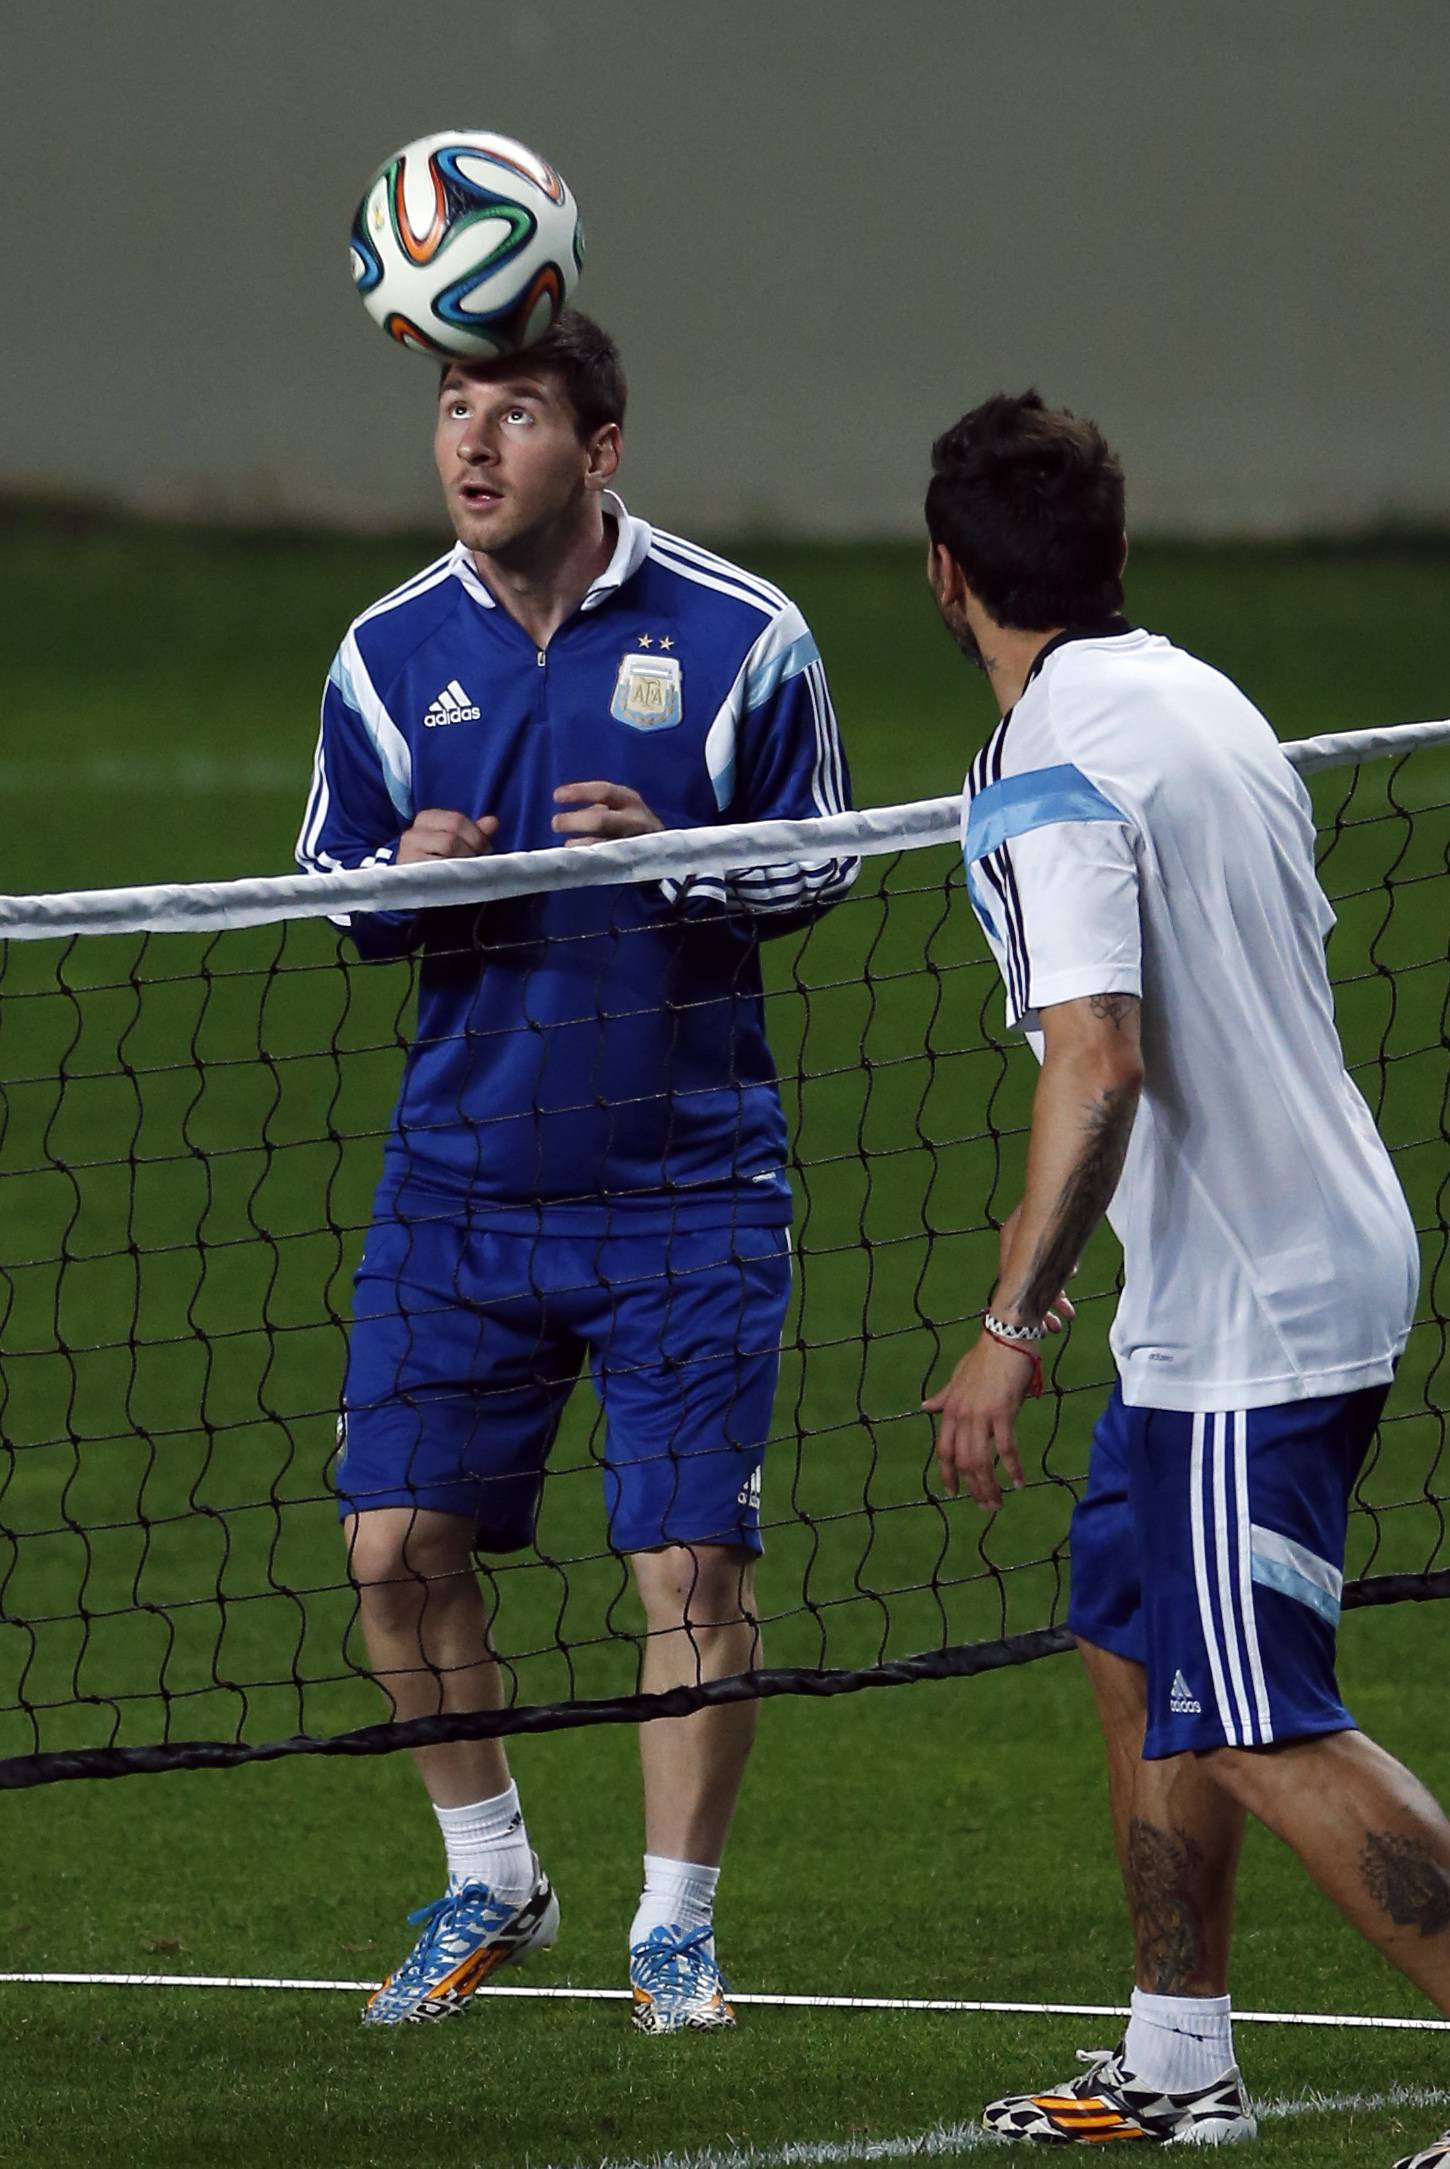 Argentina's Lionel Messi heads the ball, left, next to Argentina's Ezequiel Lavezzi, right, during a training session Wednesday at Independencia Stadium in Belo Horizonte, Brazil. Argentina will play in group F of the Brazil 2014 soccer World Cup.